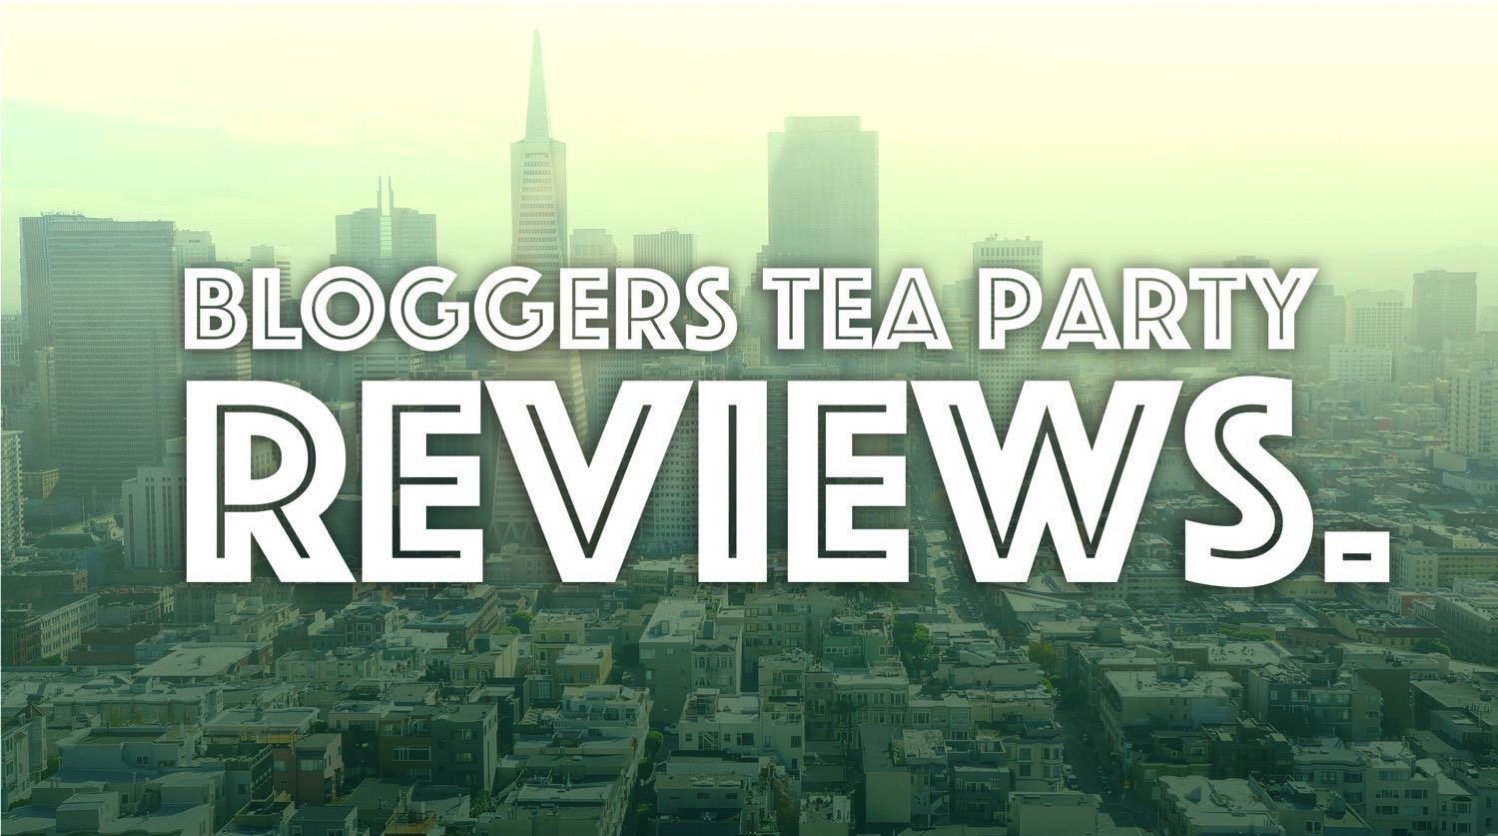 Bloggers teaparty reviews 1